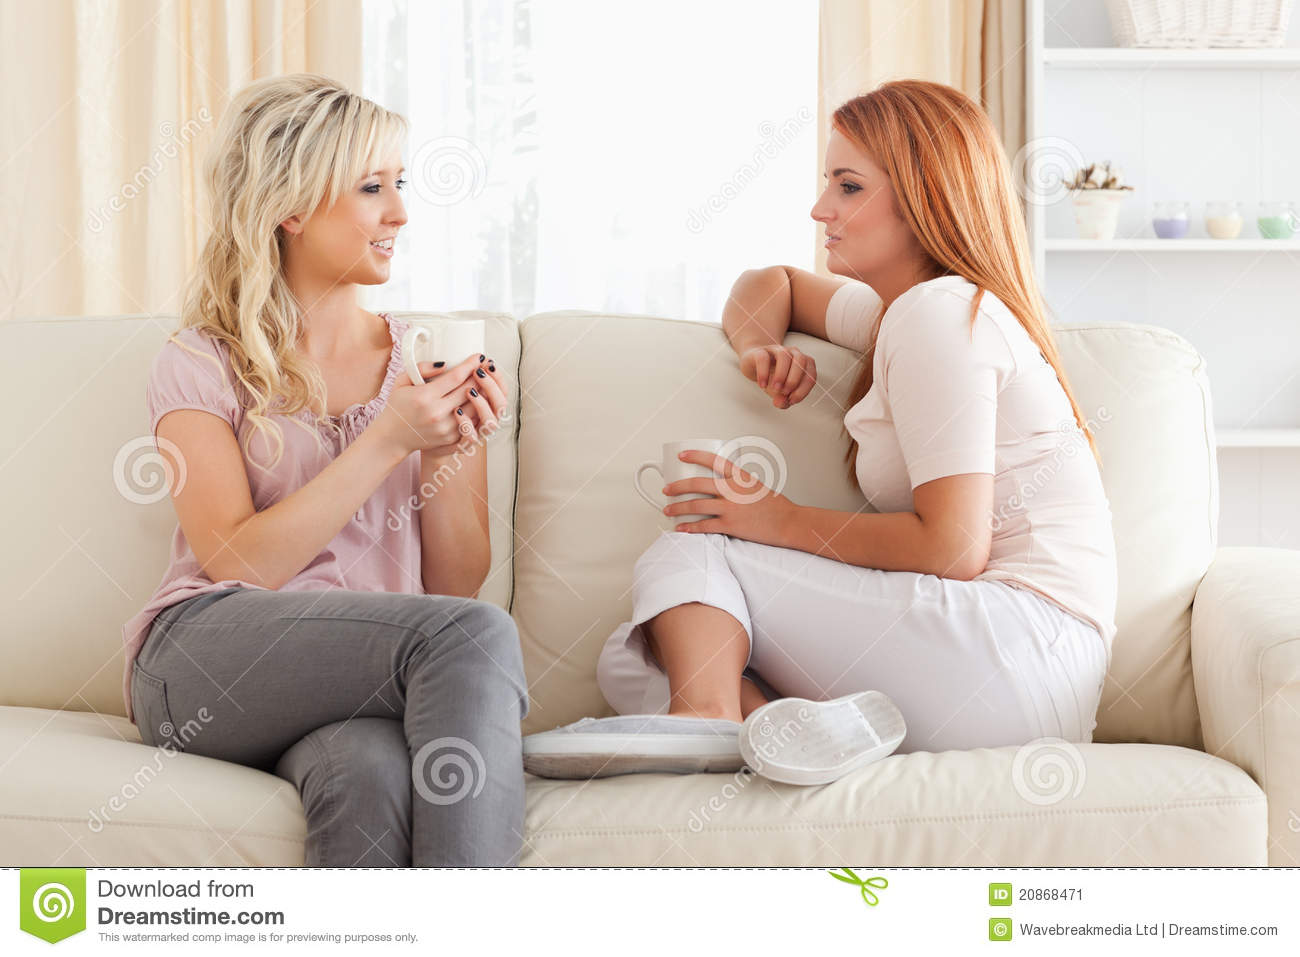 Charming young Women sitting on a sofa with cups